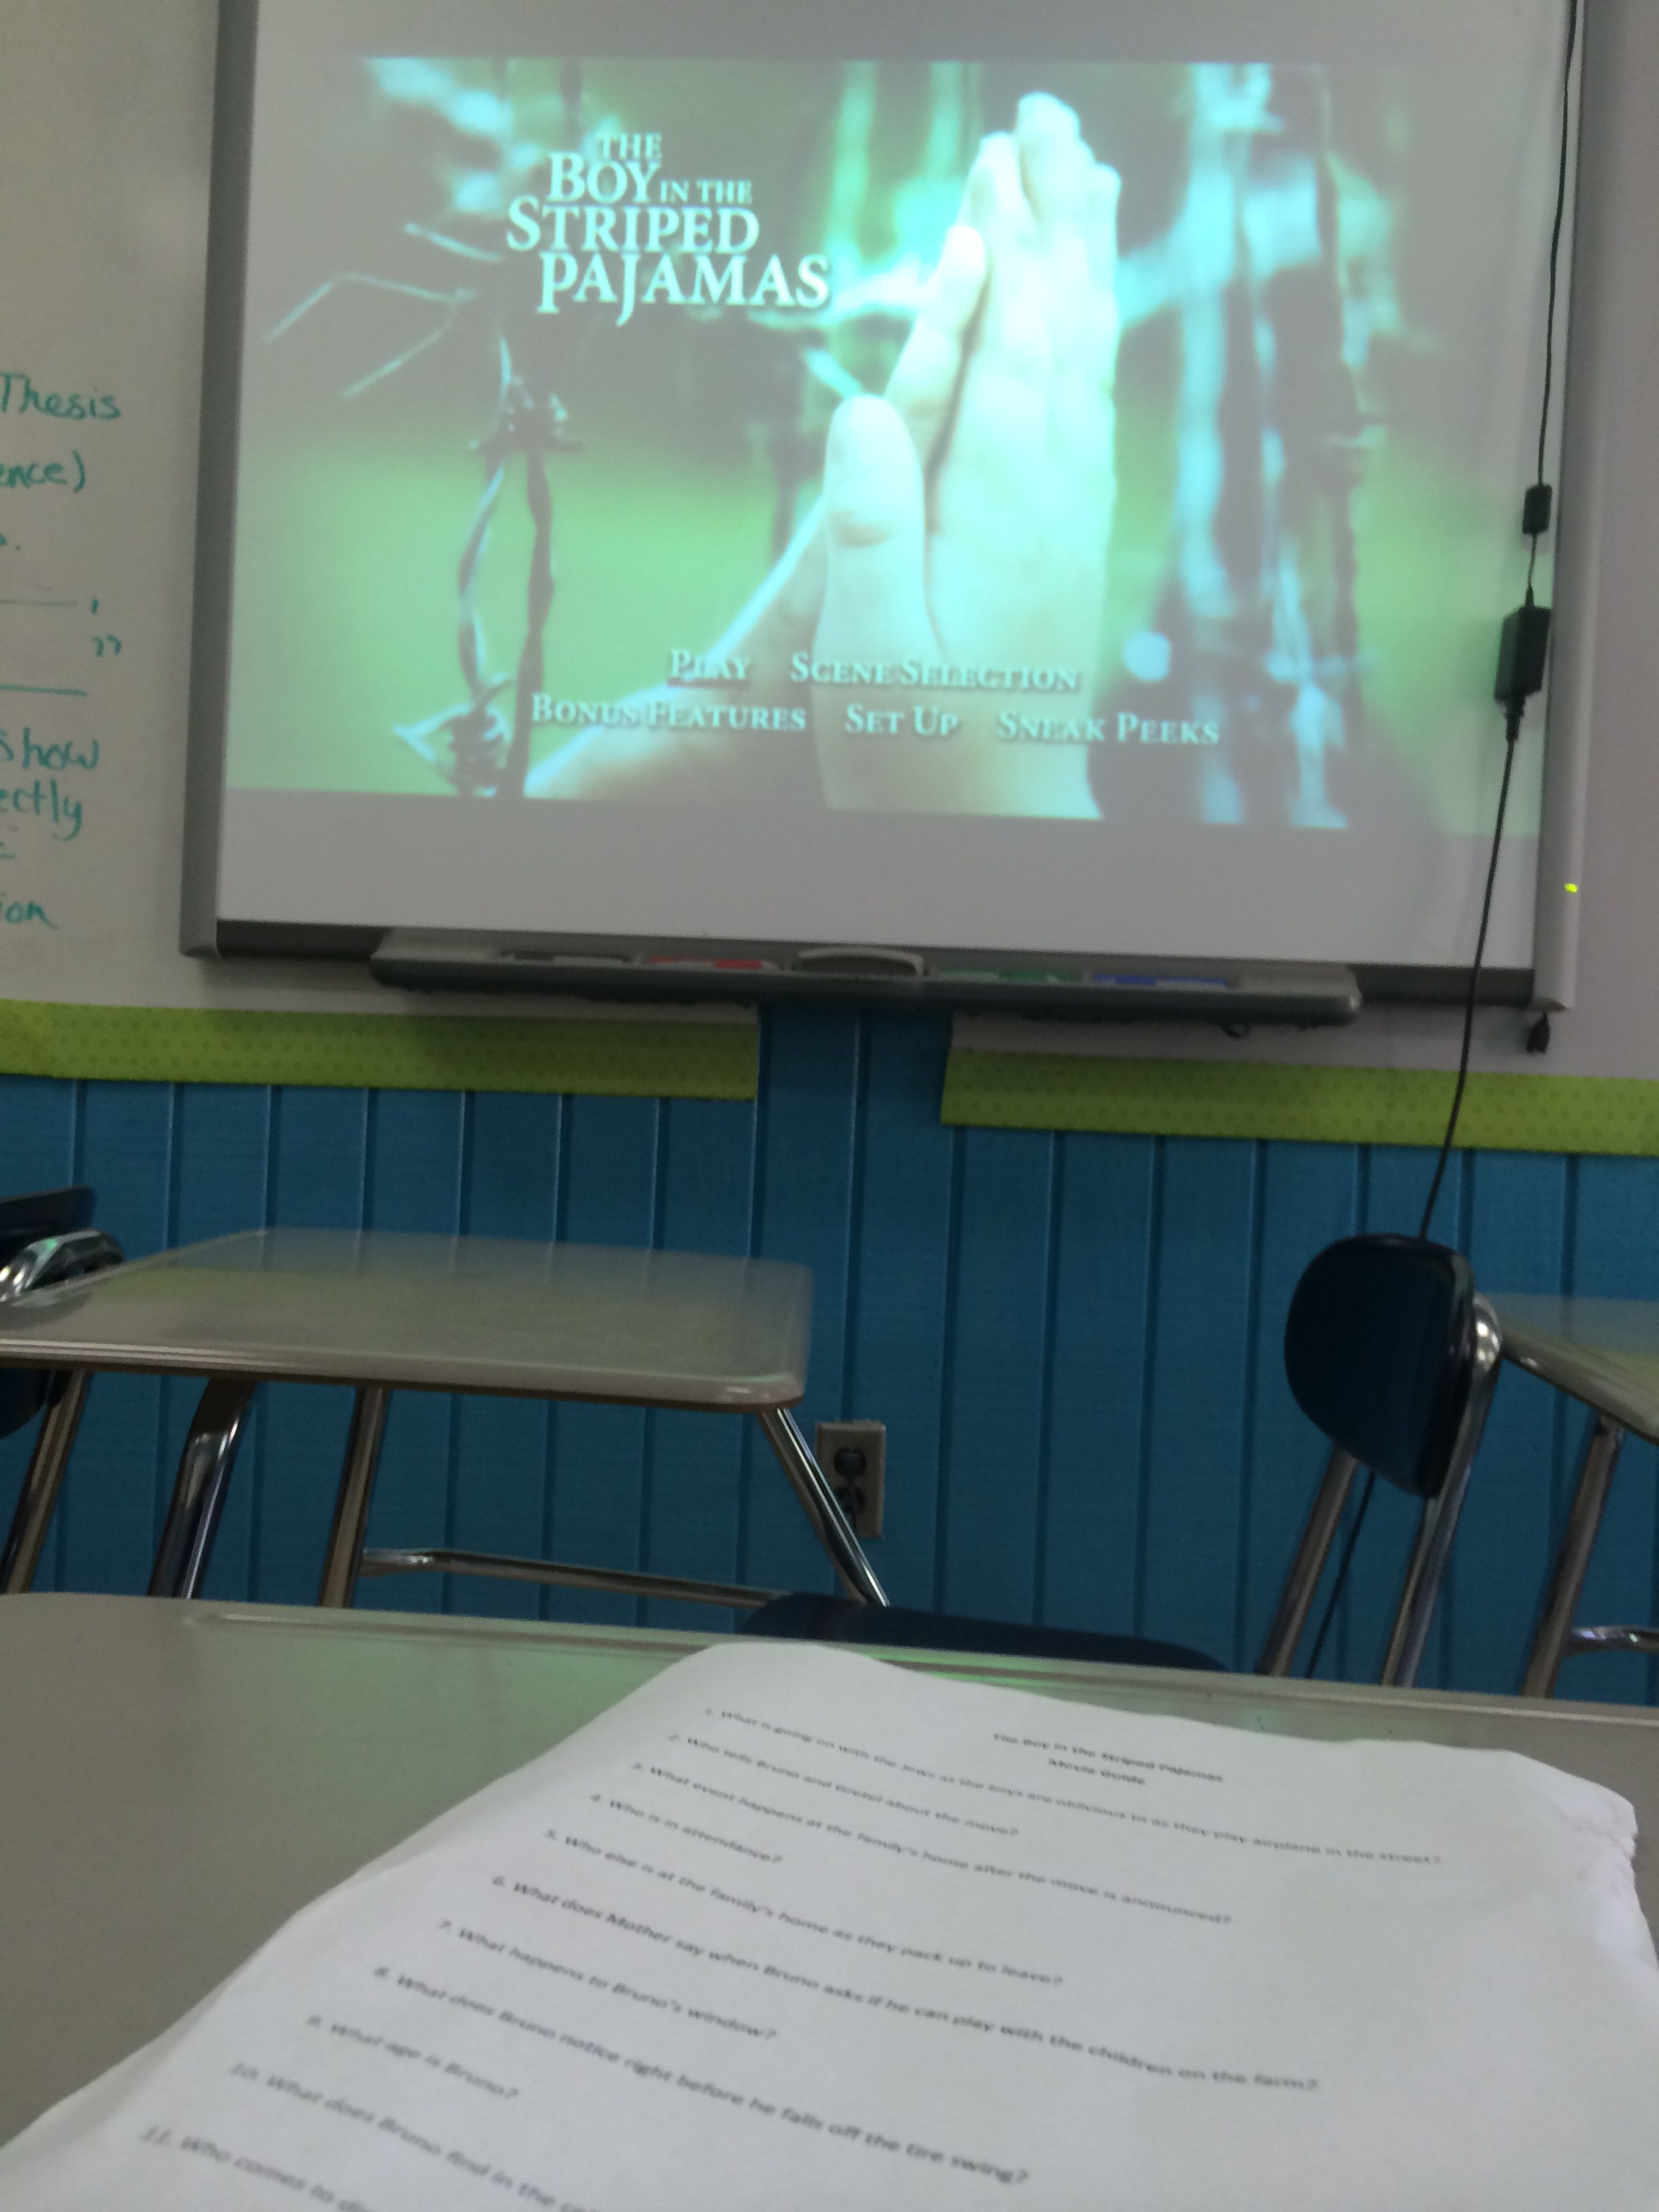 boy in the striped pajamas movie guide activities group the boy in the striped pajamas movie guide contains t chart whole group middot prompt rubricessay promptactivities